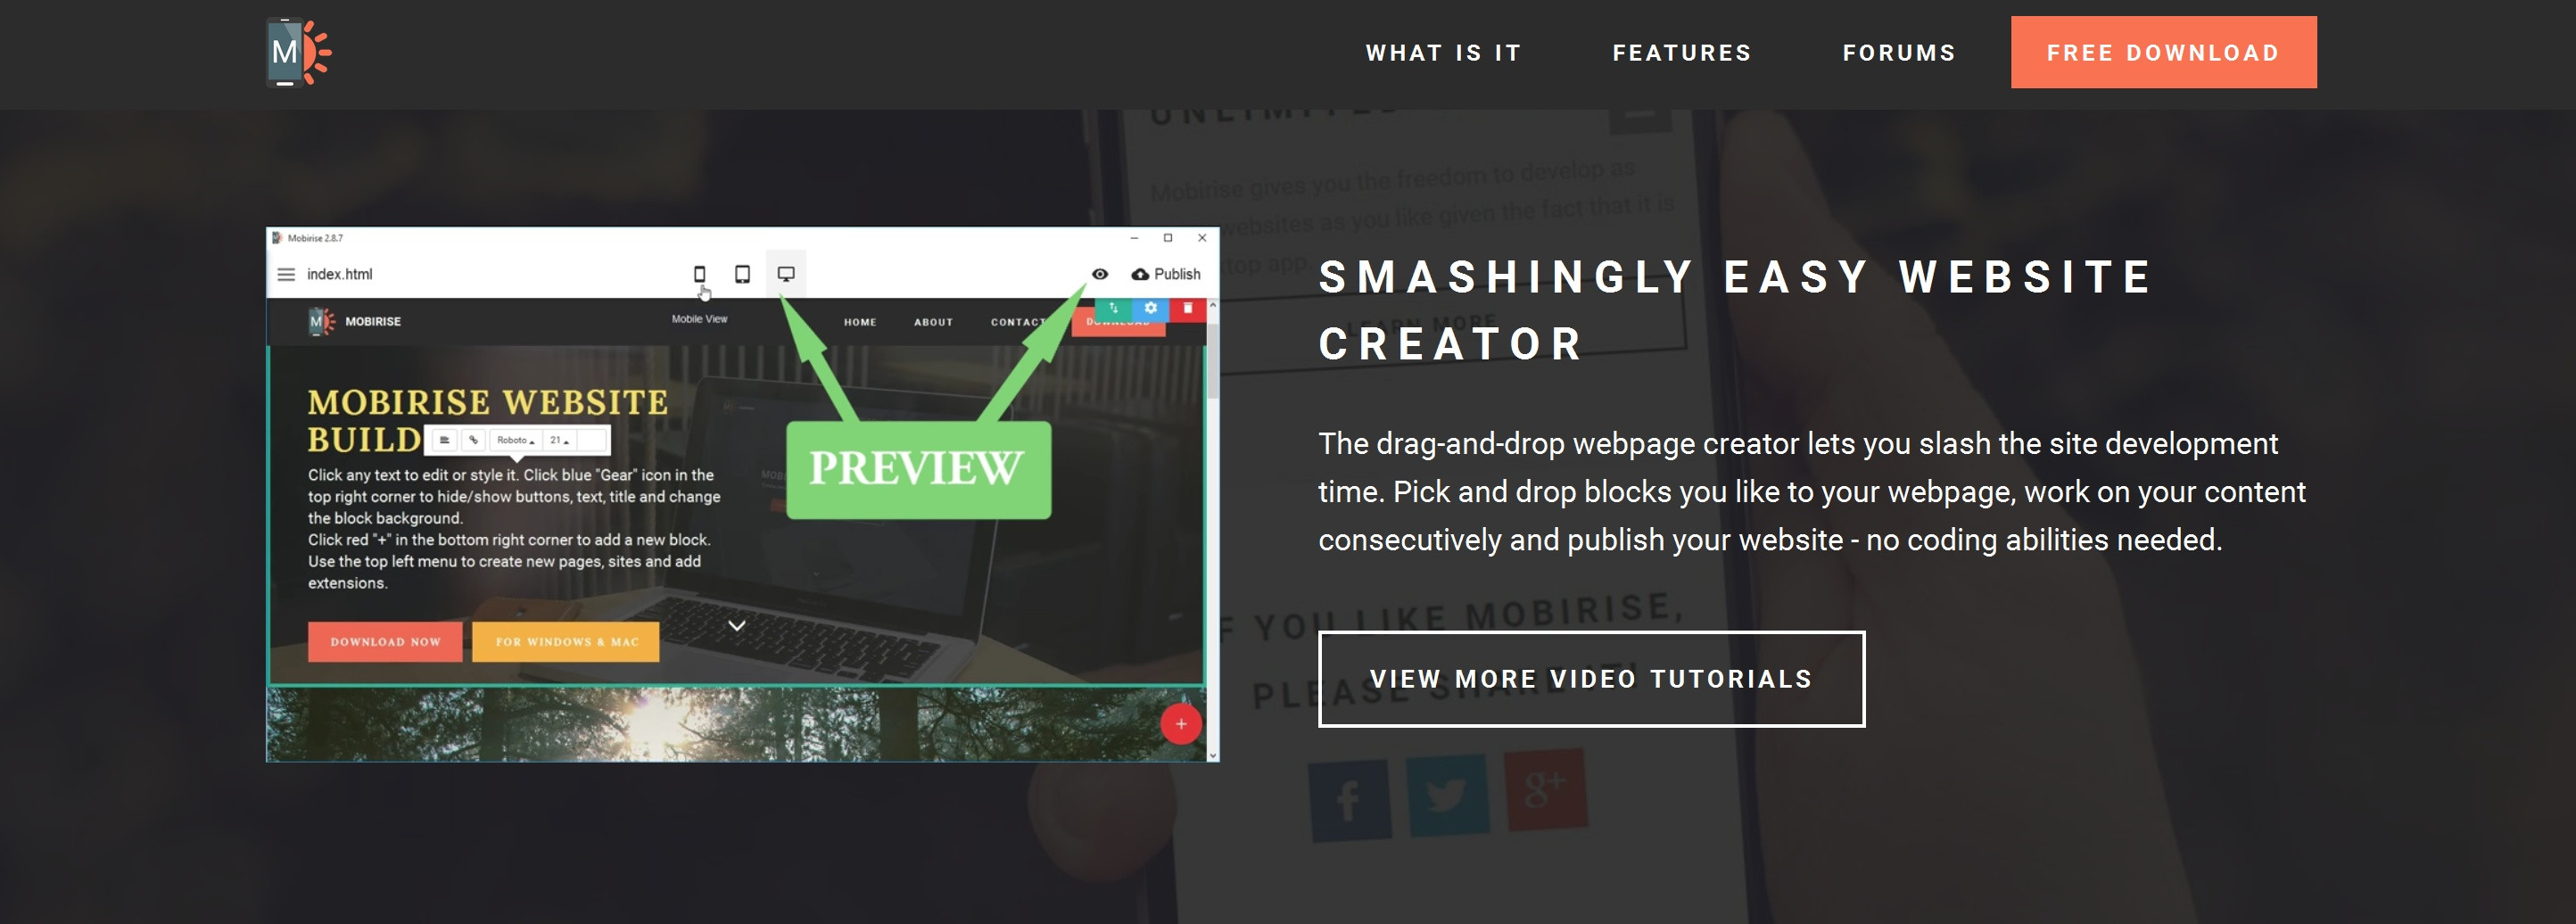 Simple WYSIWYG Web Page  Creator